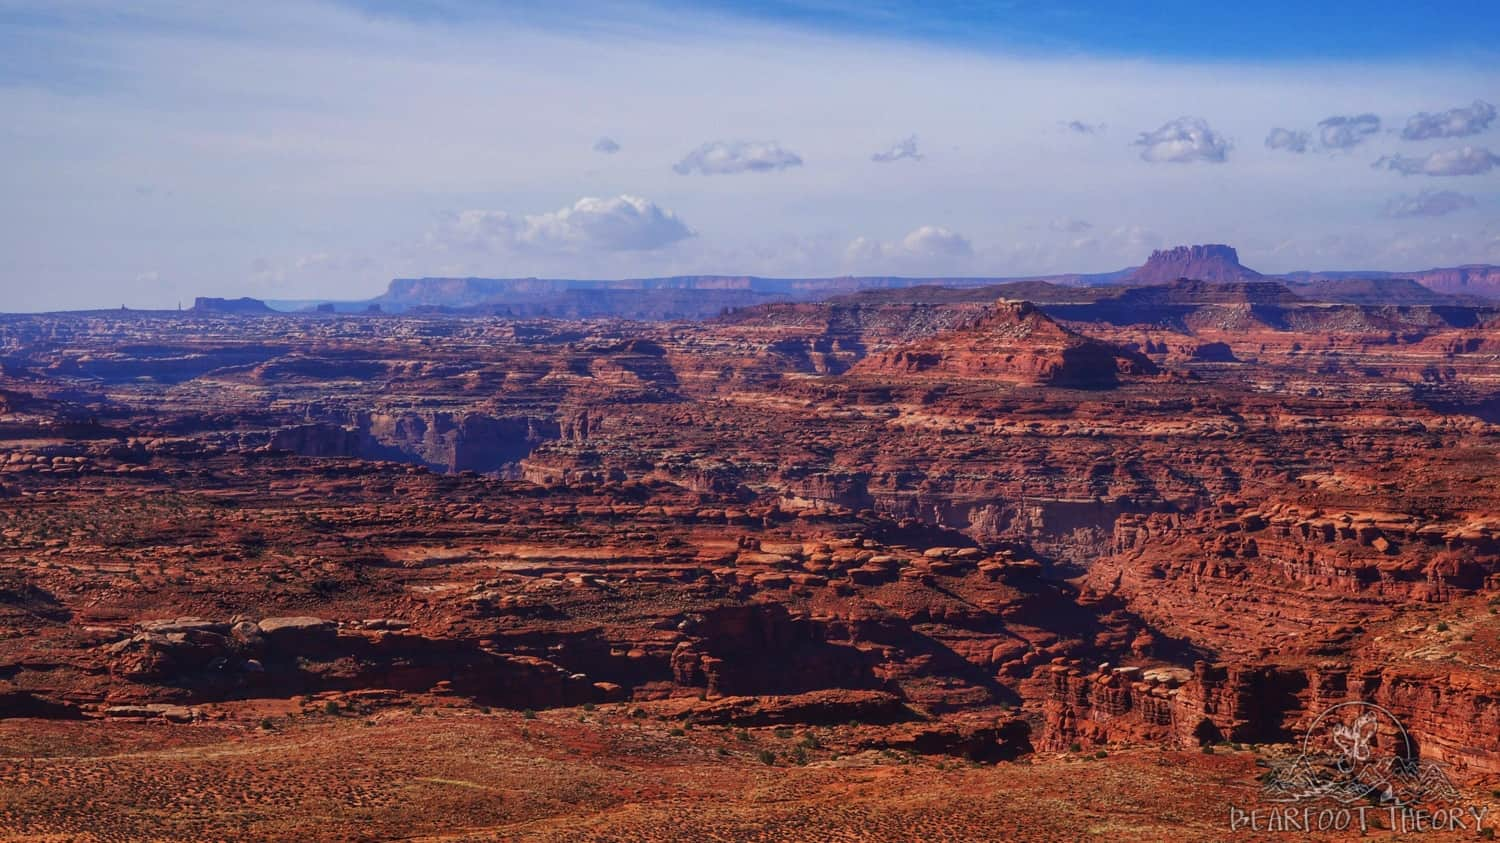 Plan your mountain biking trip on the 100-mile White Rim Trail in Canyonlands National Park. Learn about permits, itineraries, gear, campsites & more.